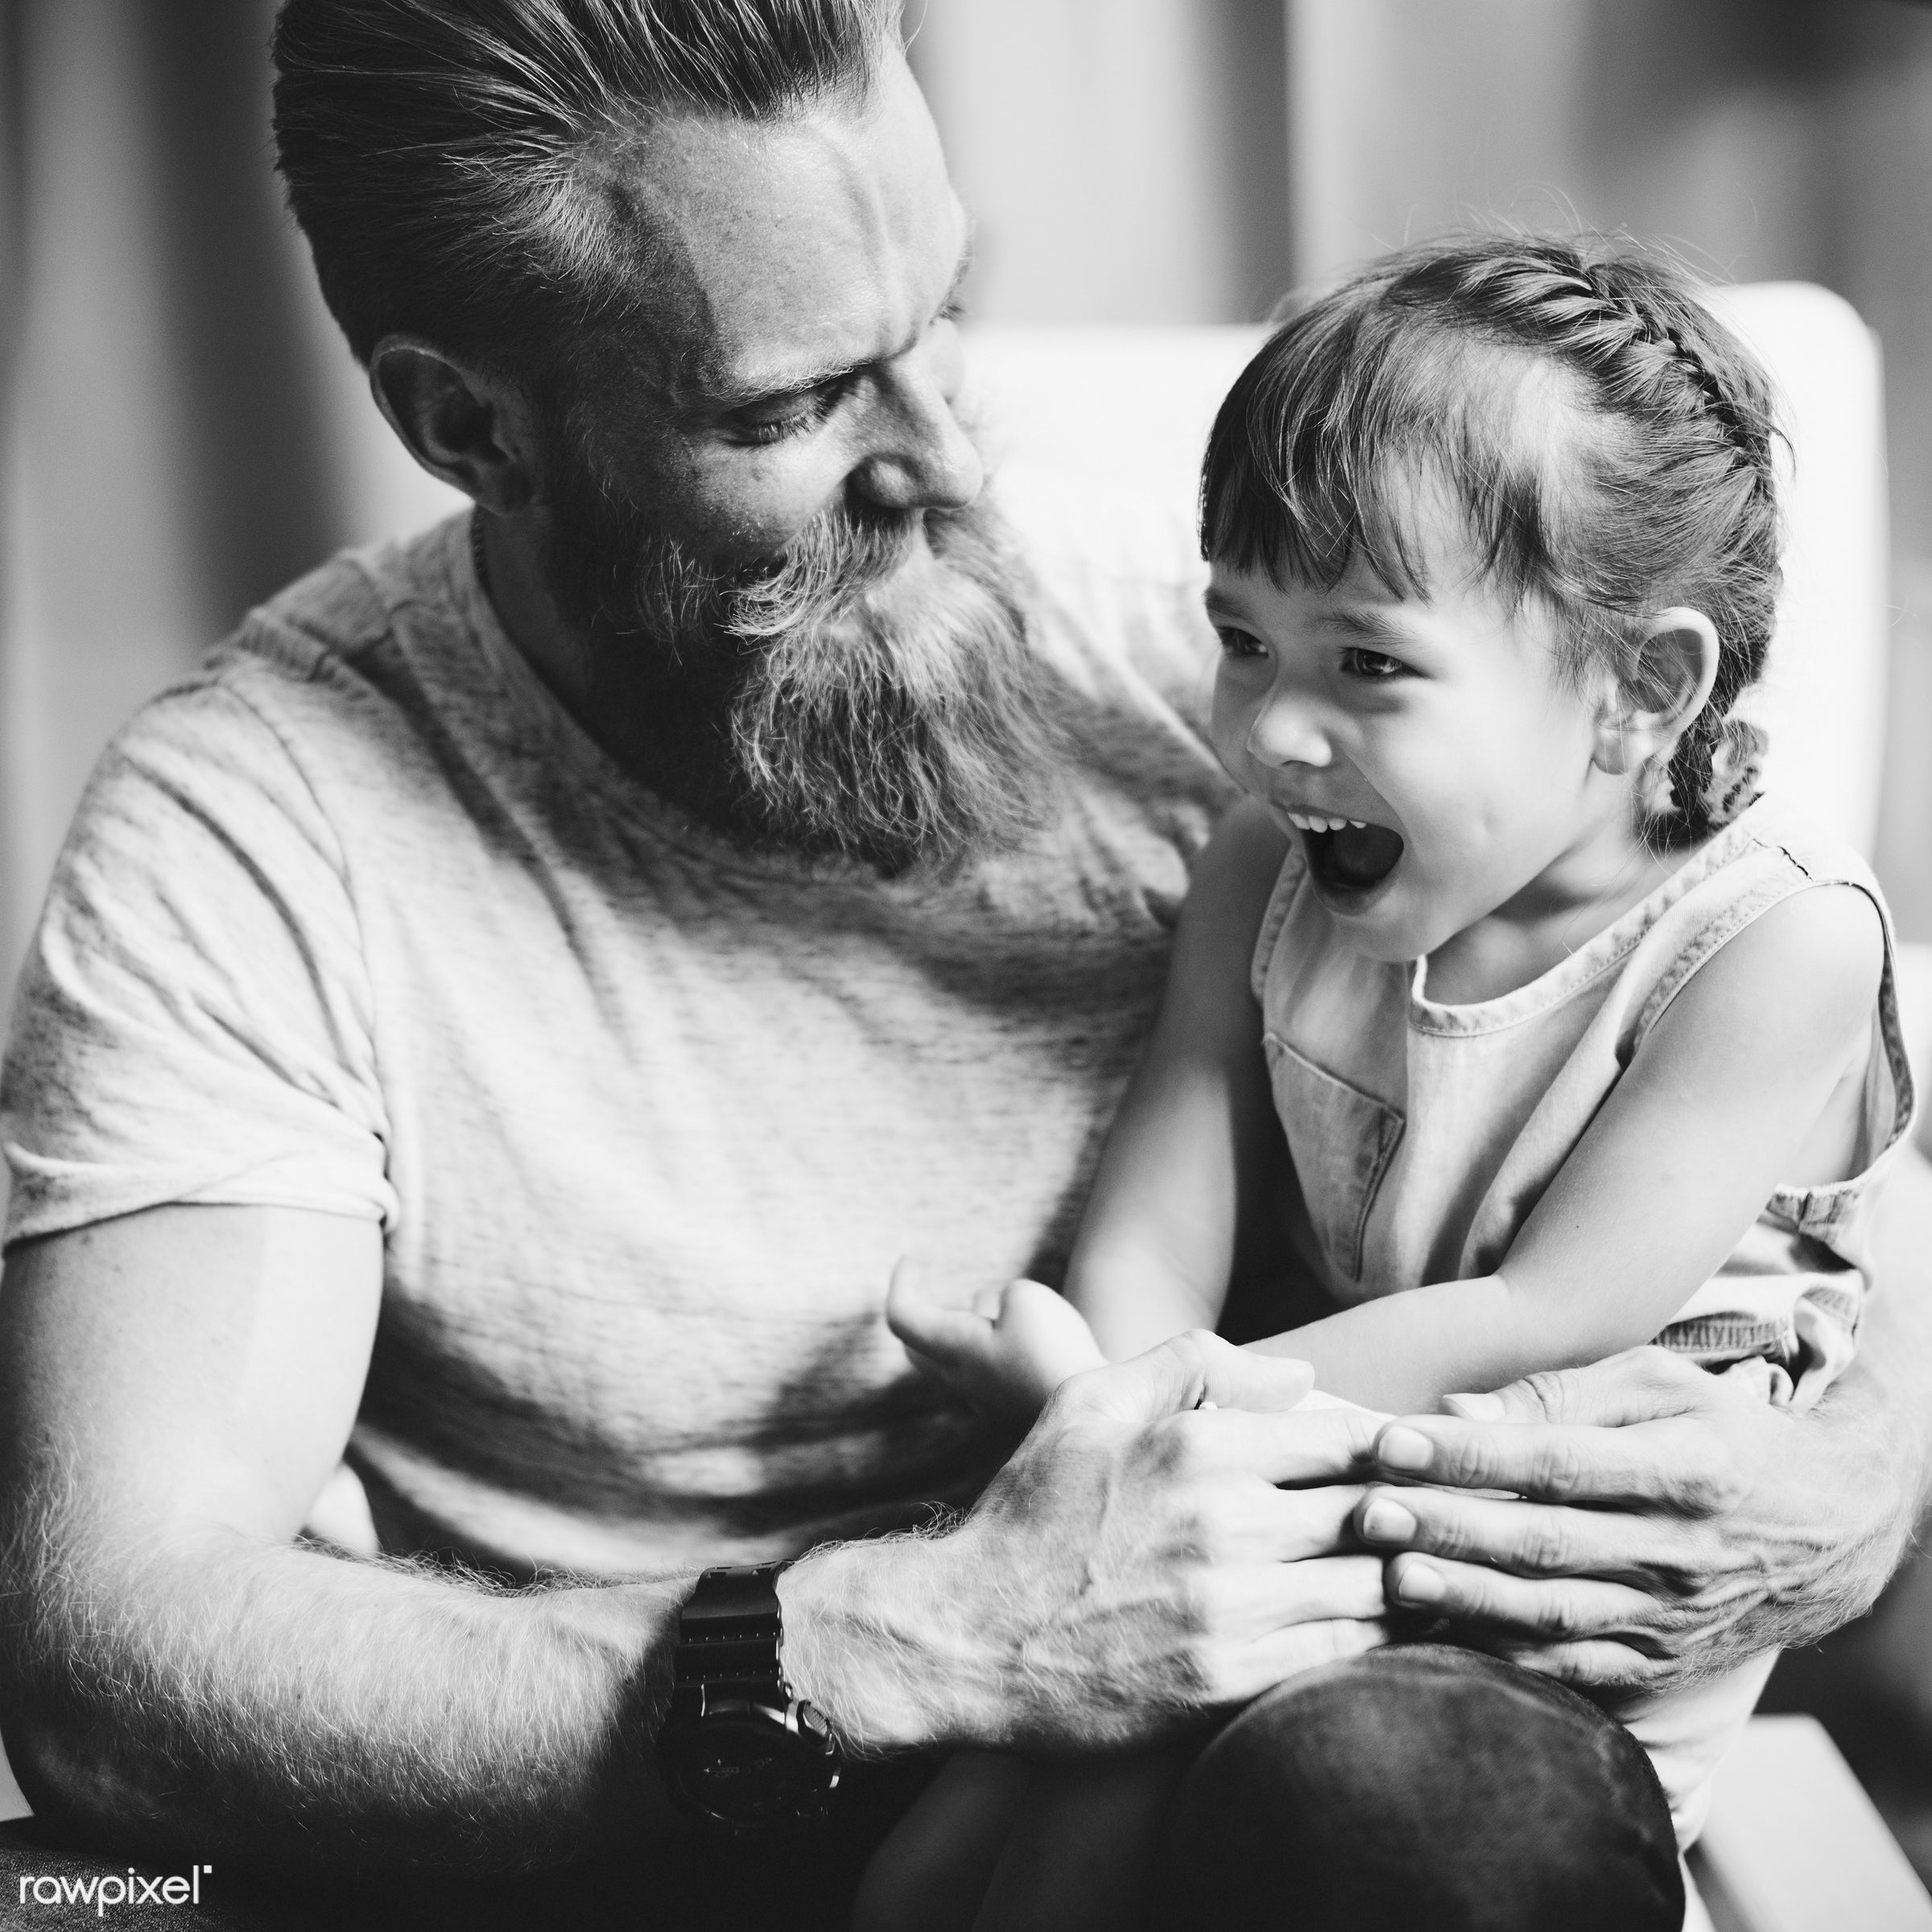 activity, bonding, carefree, casual, cheerful, child, childhood, communication, dad, daddy, daughter, enjoyment, ethnicity,...